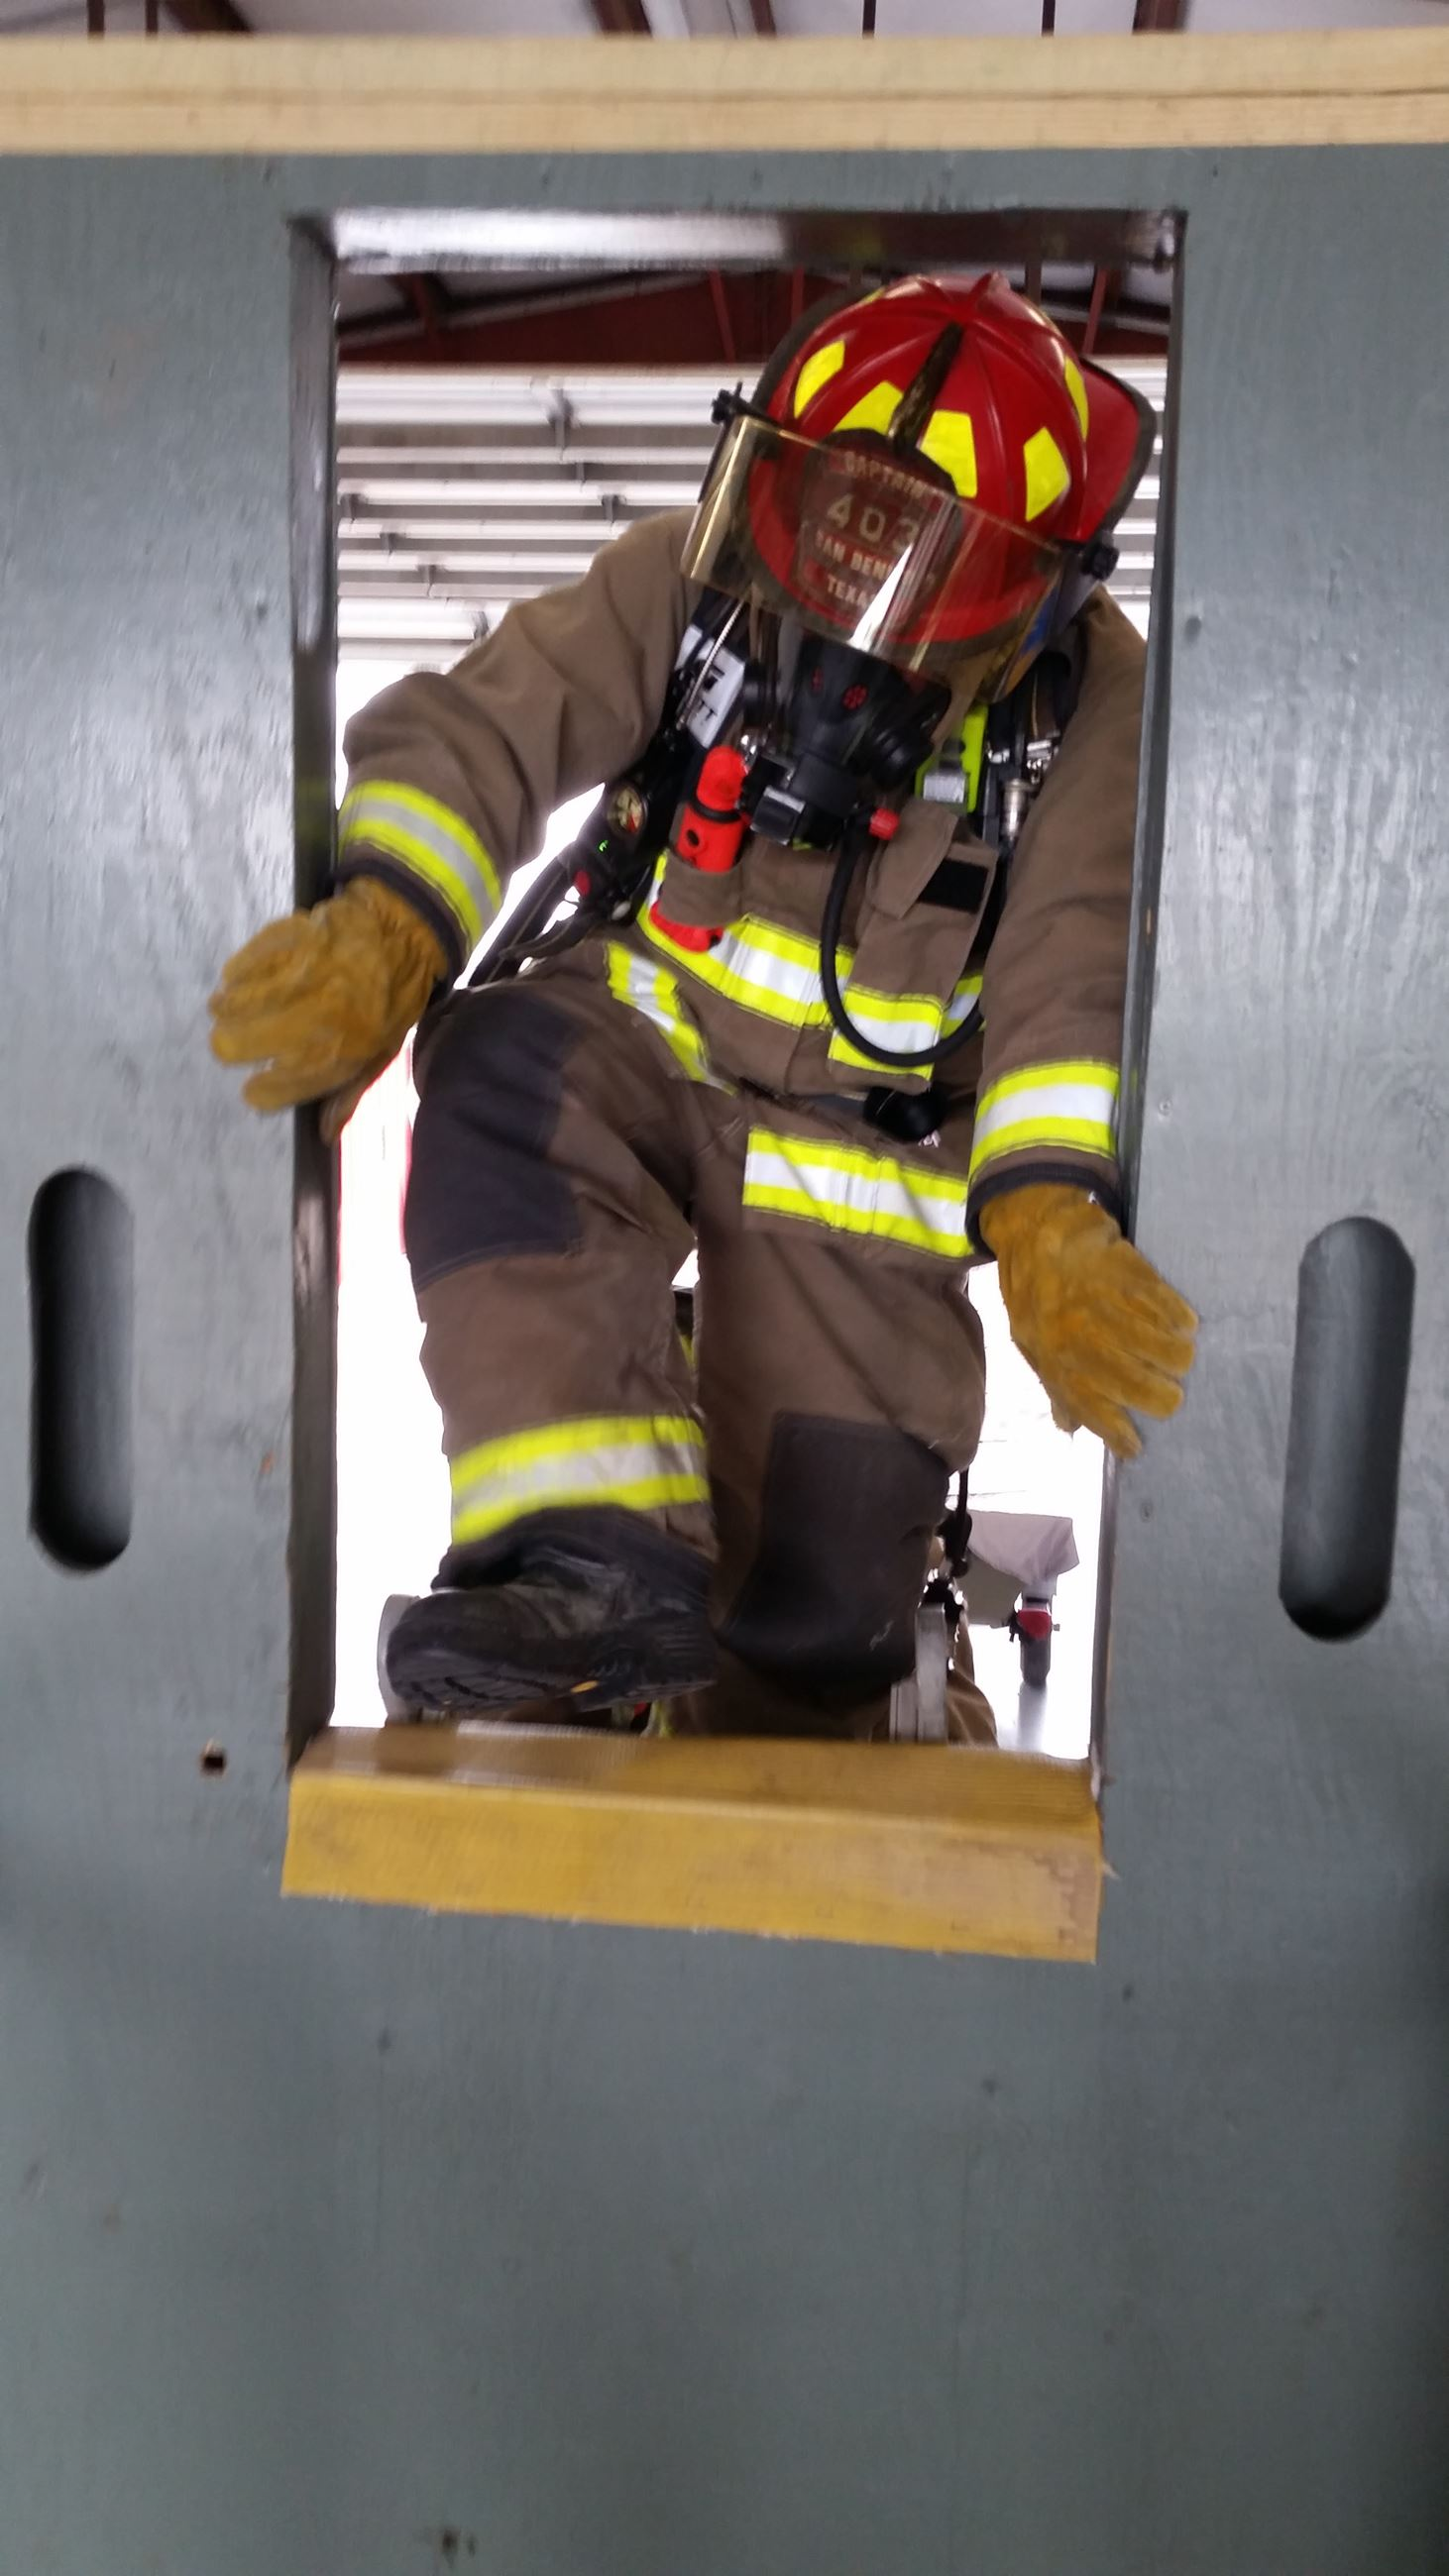 A firefighter climbs through an entry